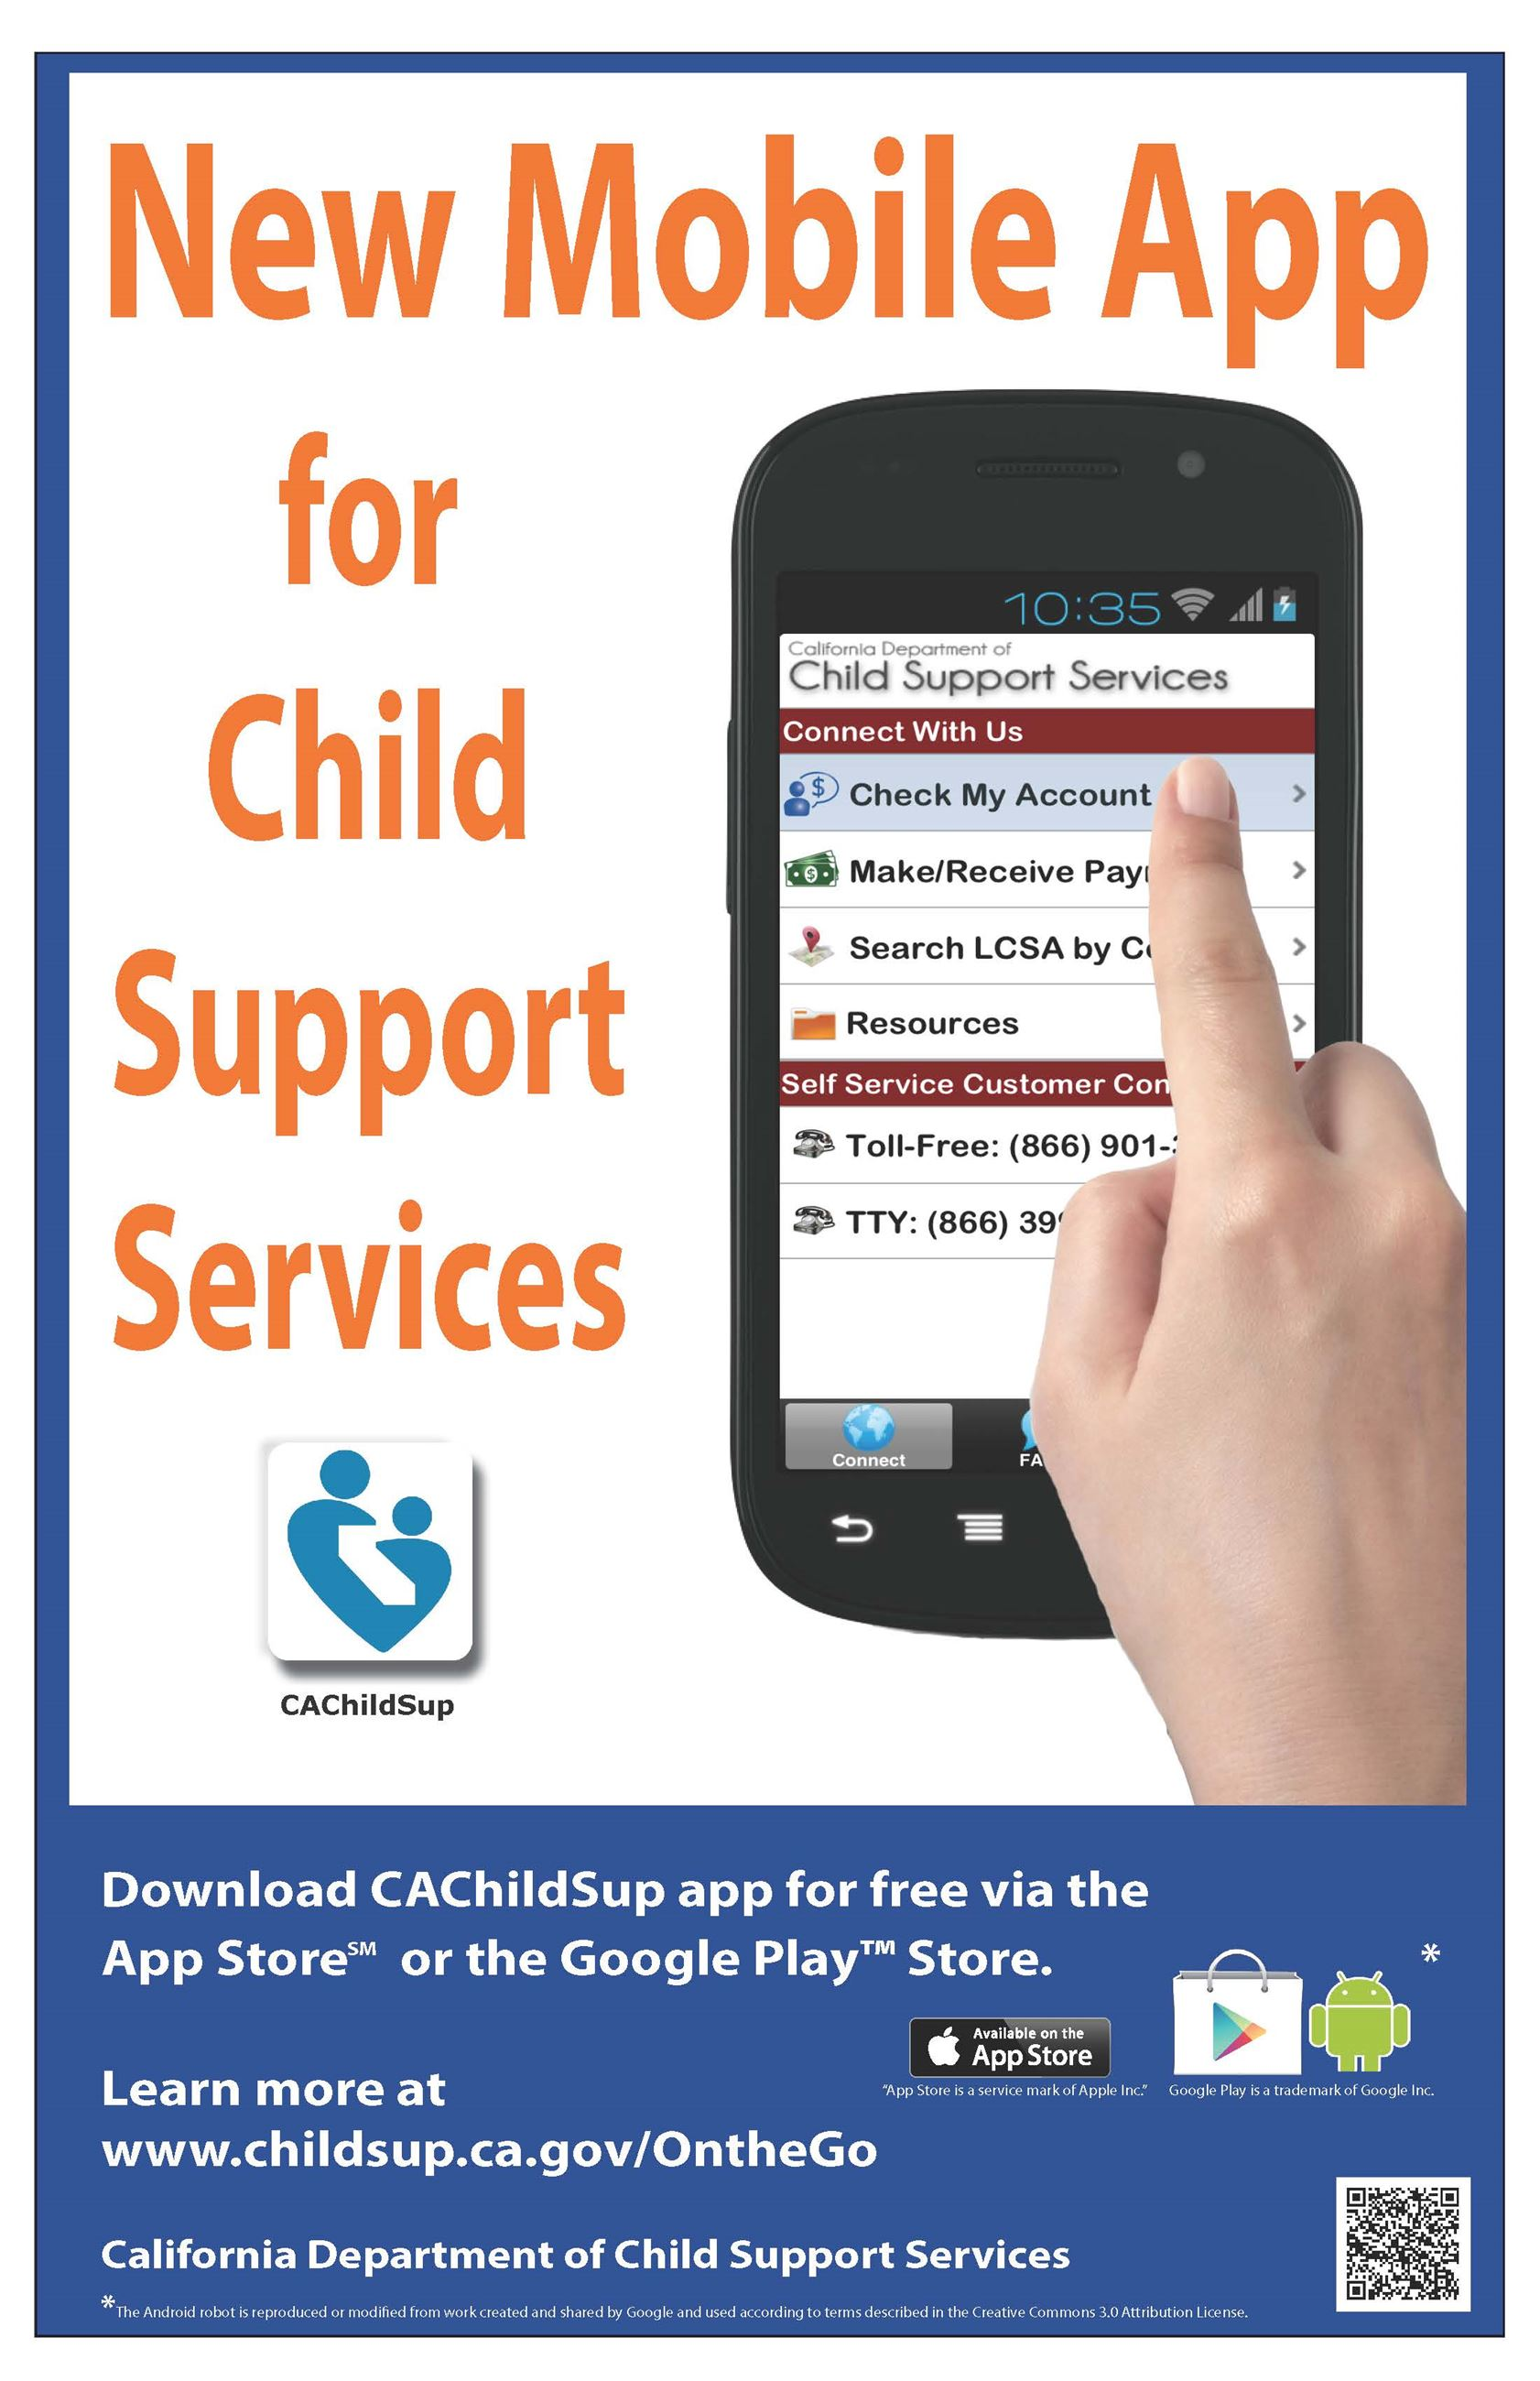 New mobile app for child support services image of hand using cell phone